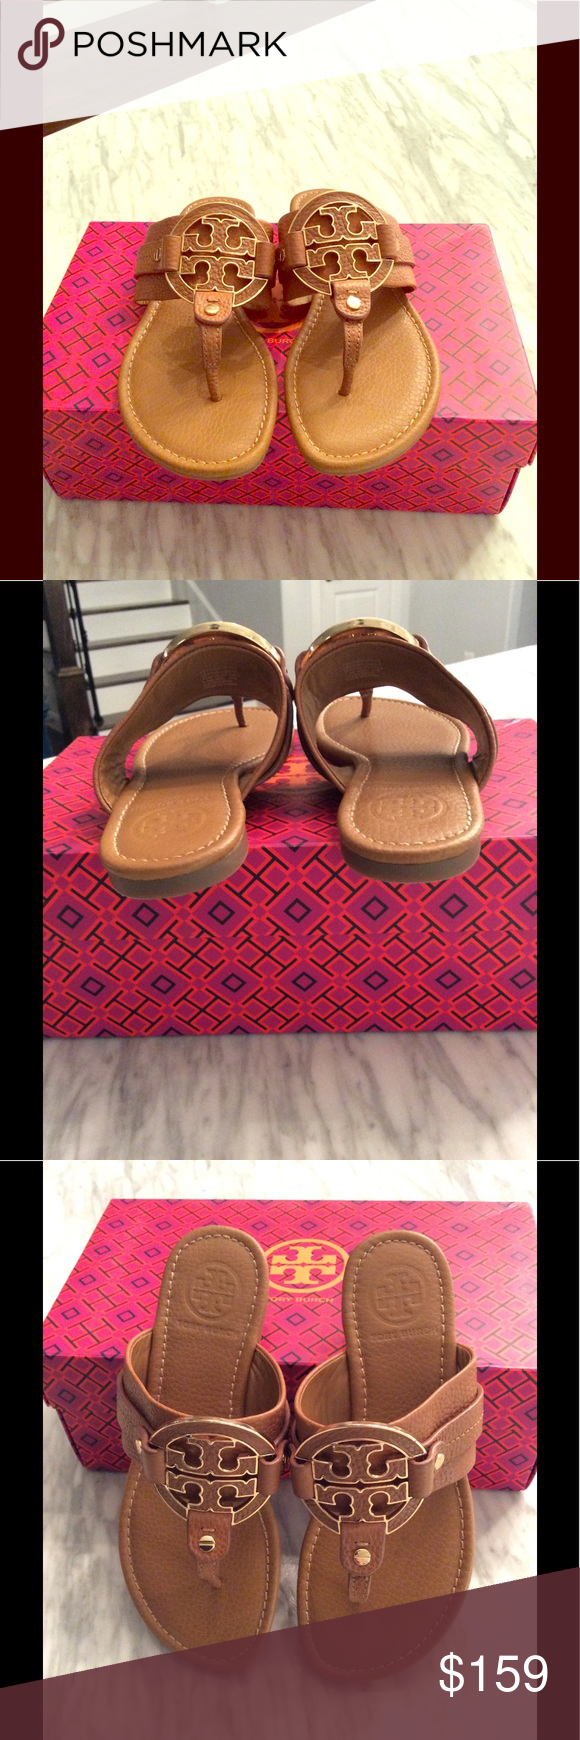 a5a11ccf3d3eaf Tory Burch Amanda Sandals Beautiful Tory Burch Amanda Sandals in tan nude  soft cowhide leather with medallions trimmed in gold. You will mistake  these for ...